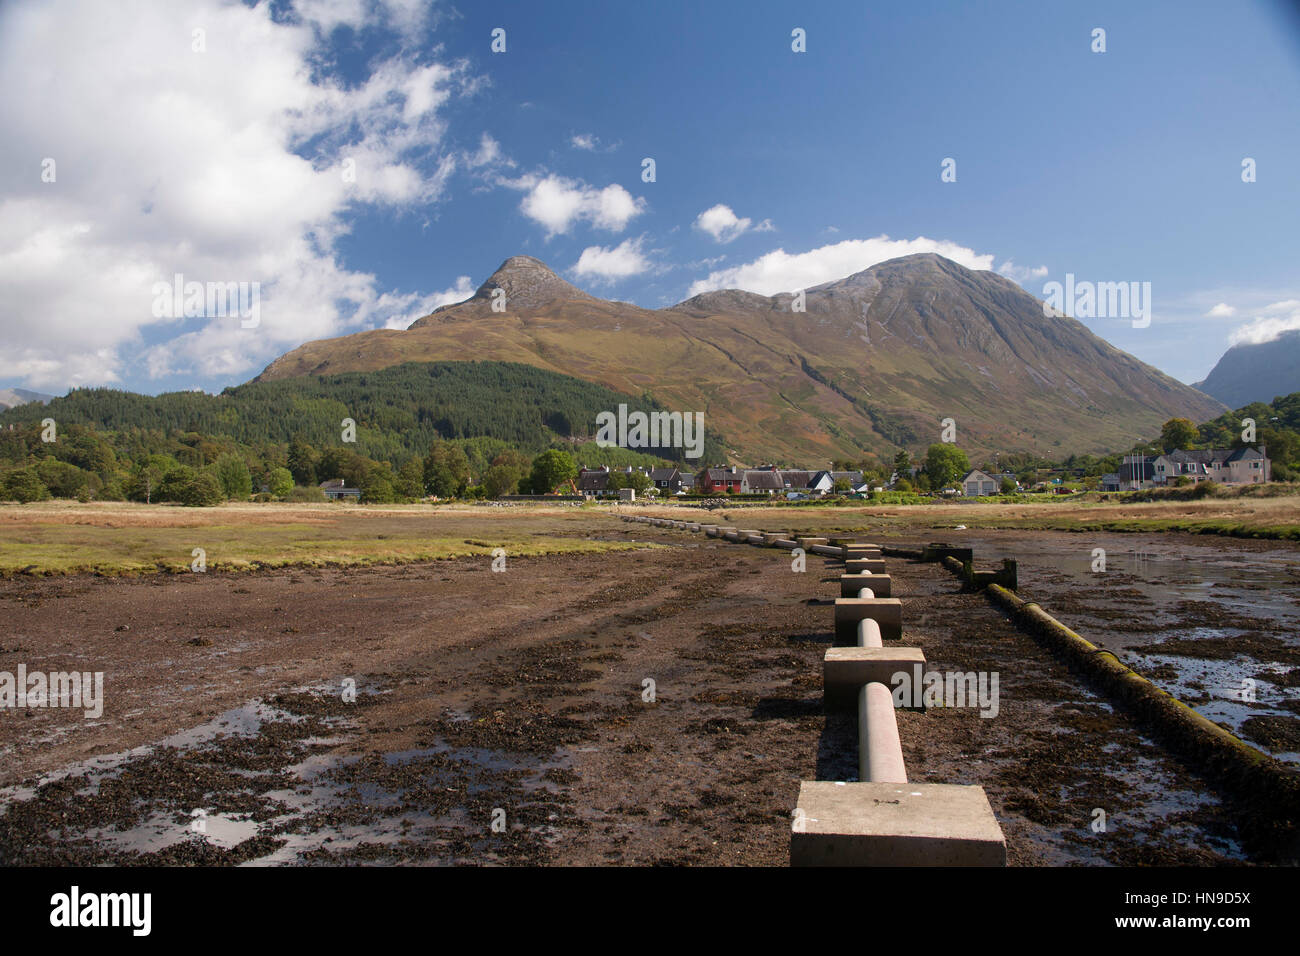 Large pipes leading from Loch Leven towards Glen Coe Village with Pap of Glen Coe mountain, majestic highlands at - Stock Image